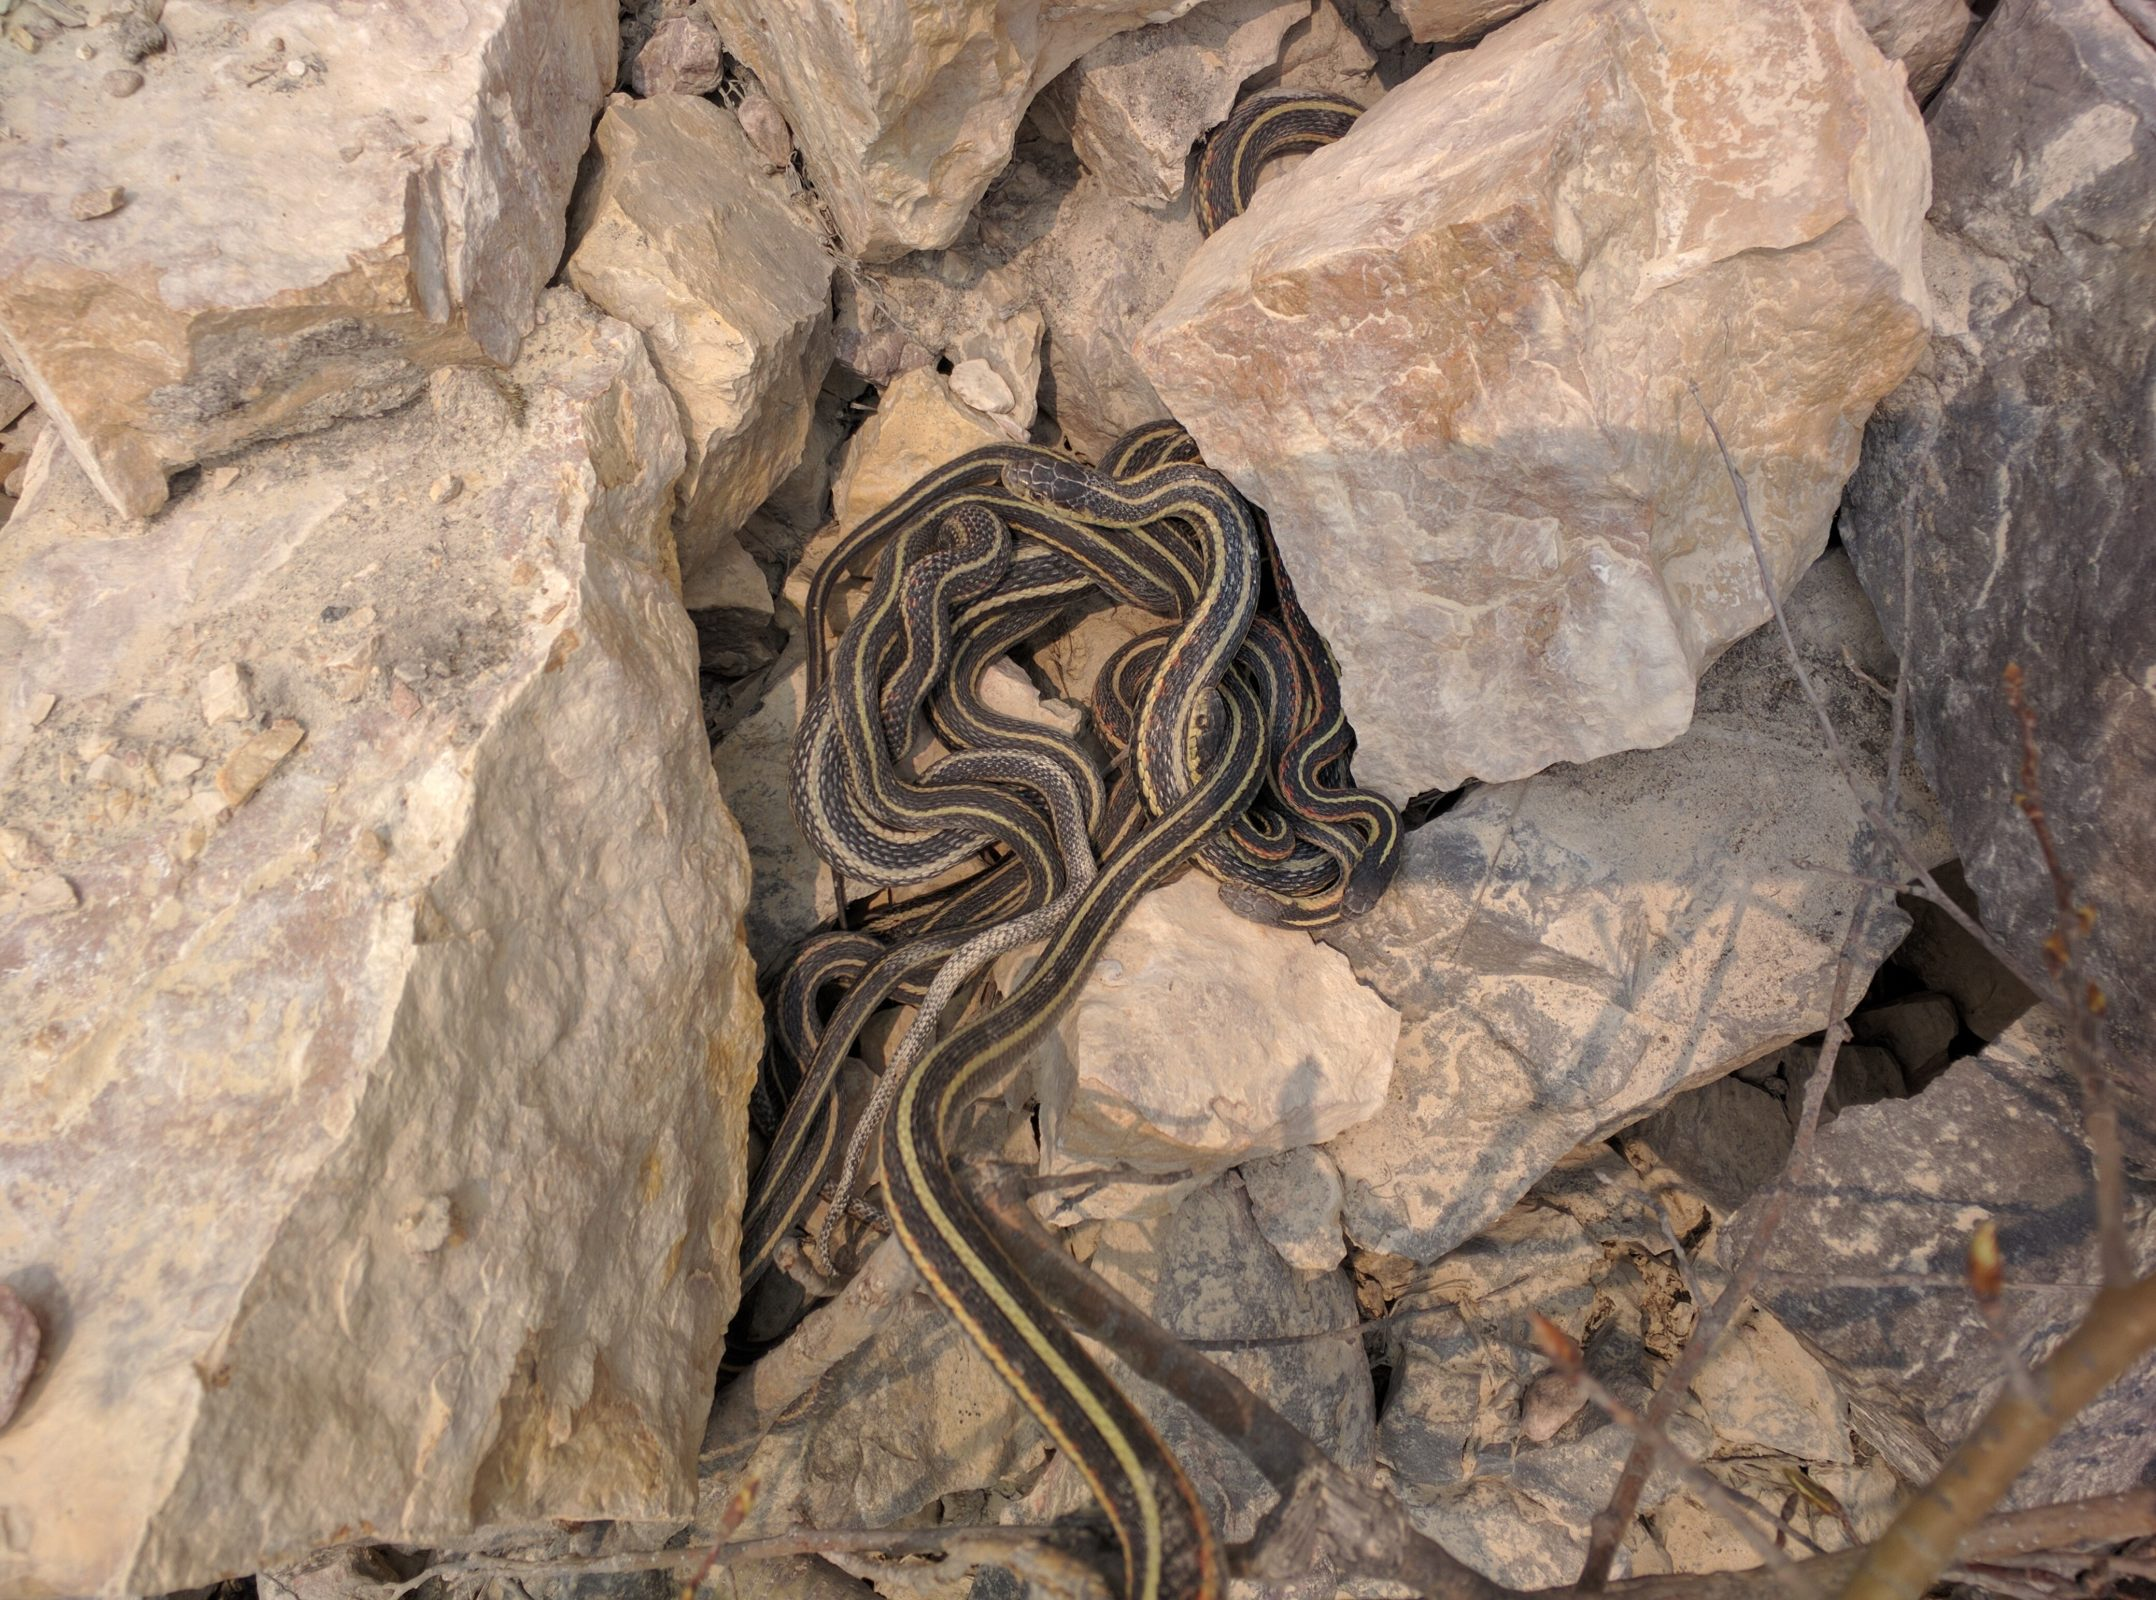 All about snakes | Welcome Wildlife